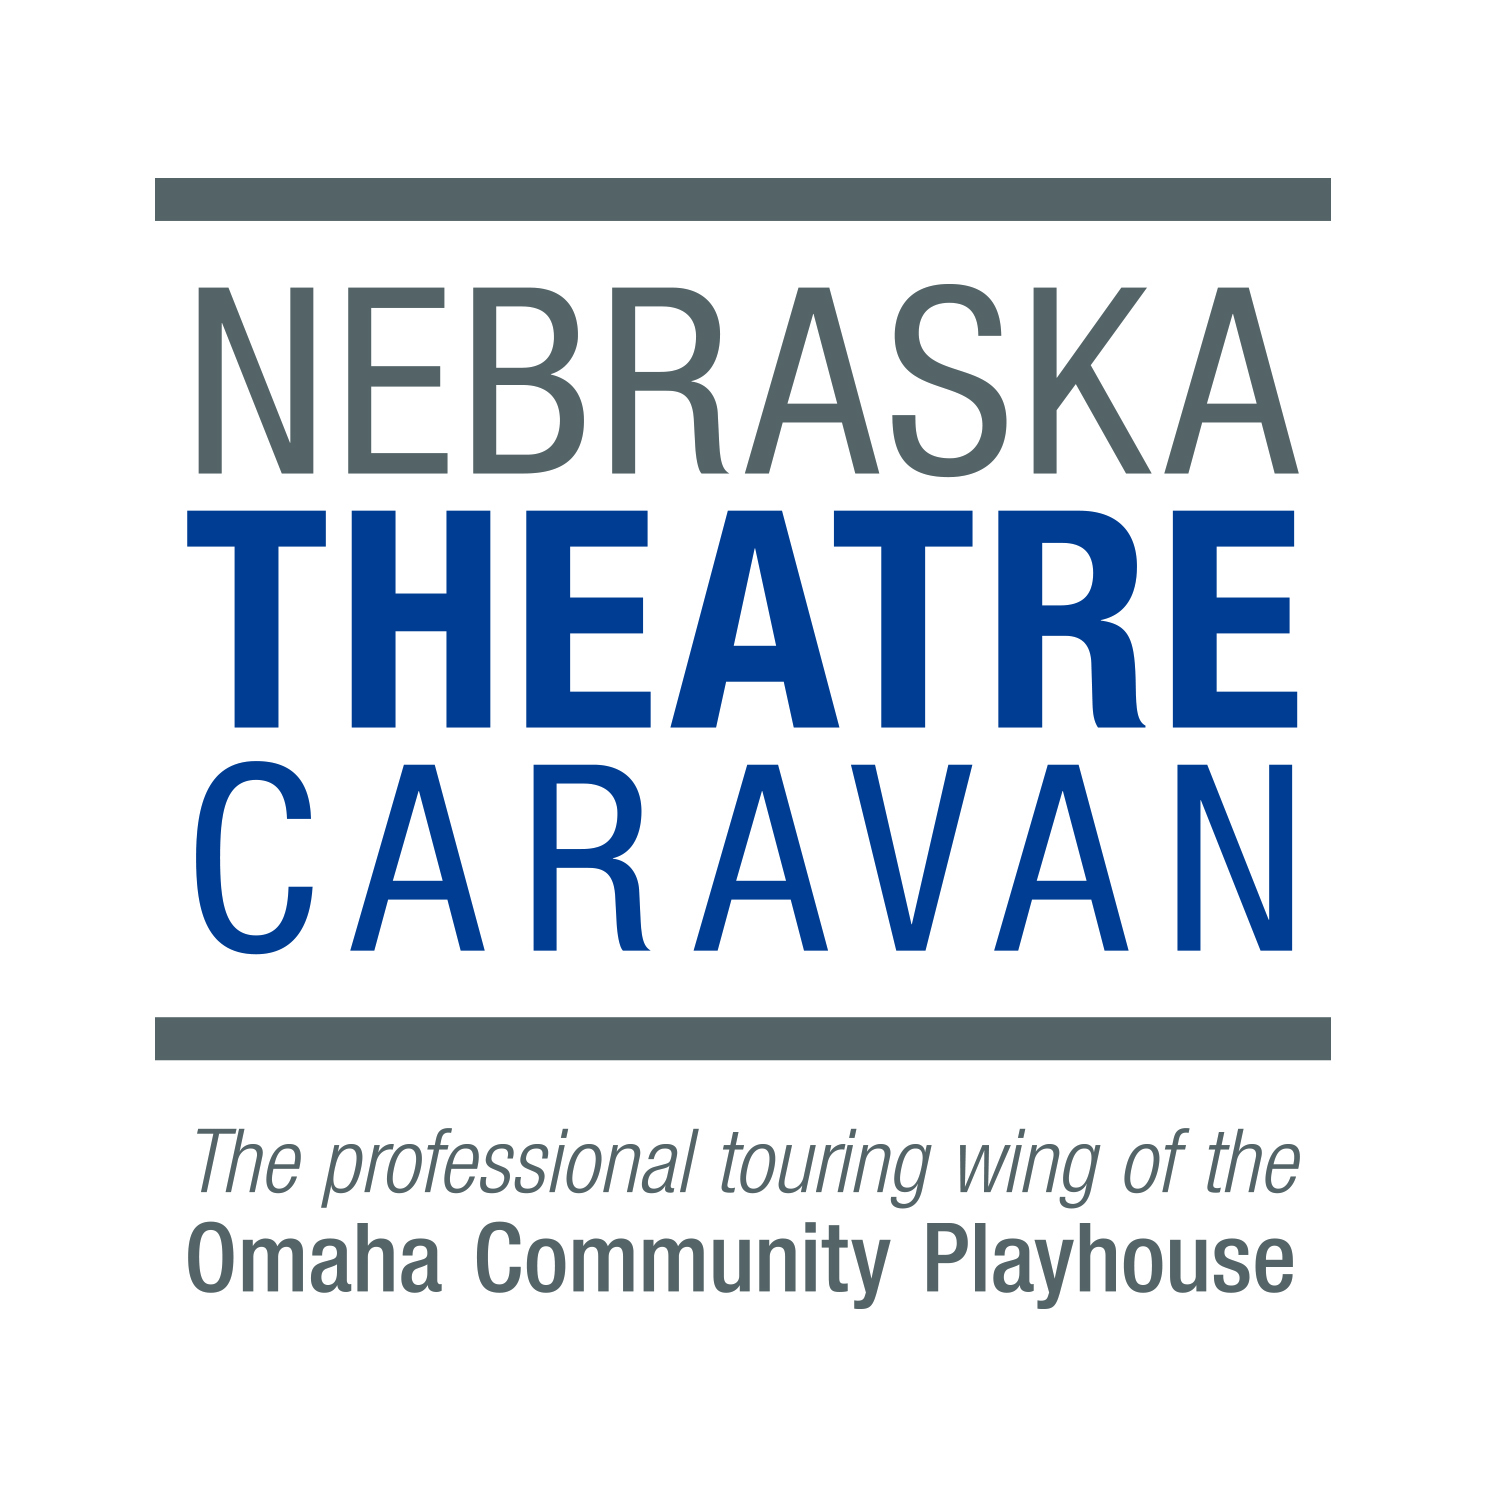 Book now - Ready to take the next step? The Nebraska Theatre Caravan provides stellar, quality productions every time. Book the show that will bring the magic of Christmas to your patrons.